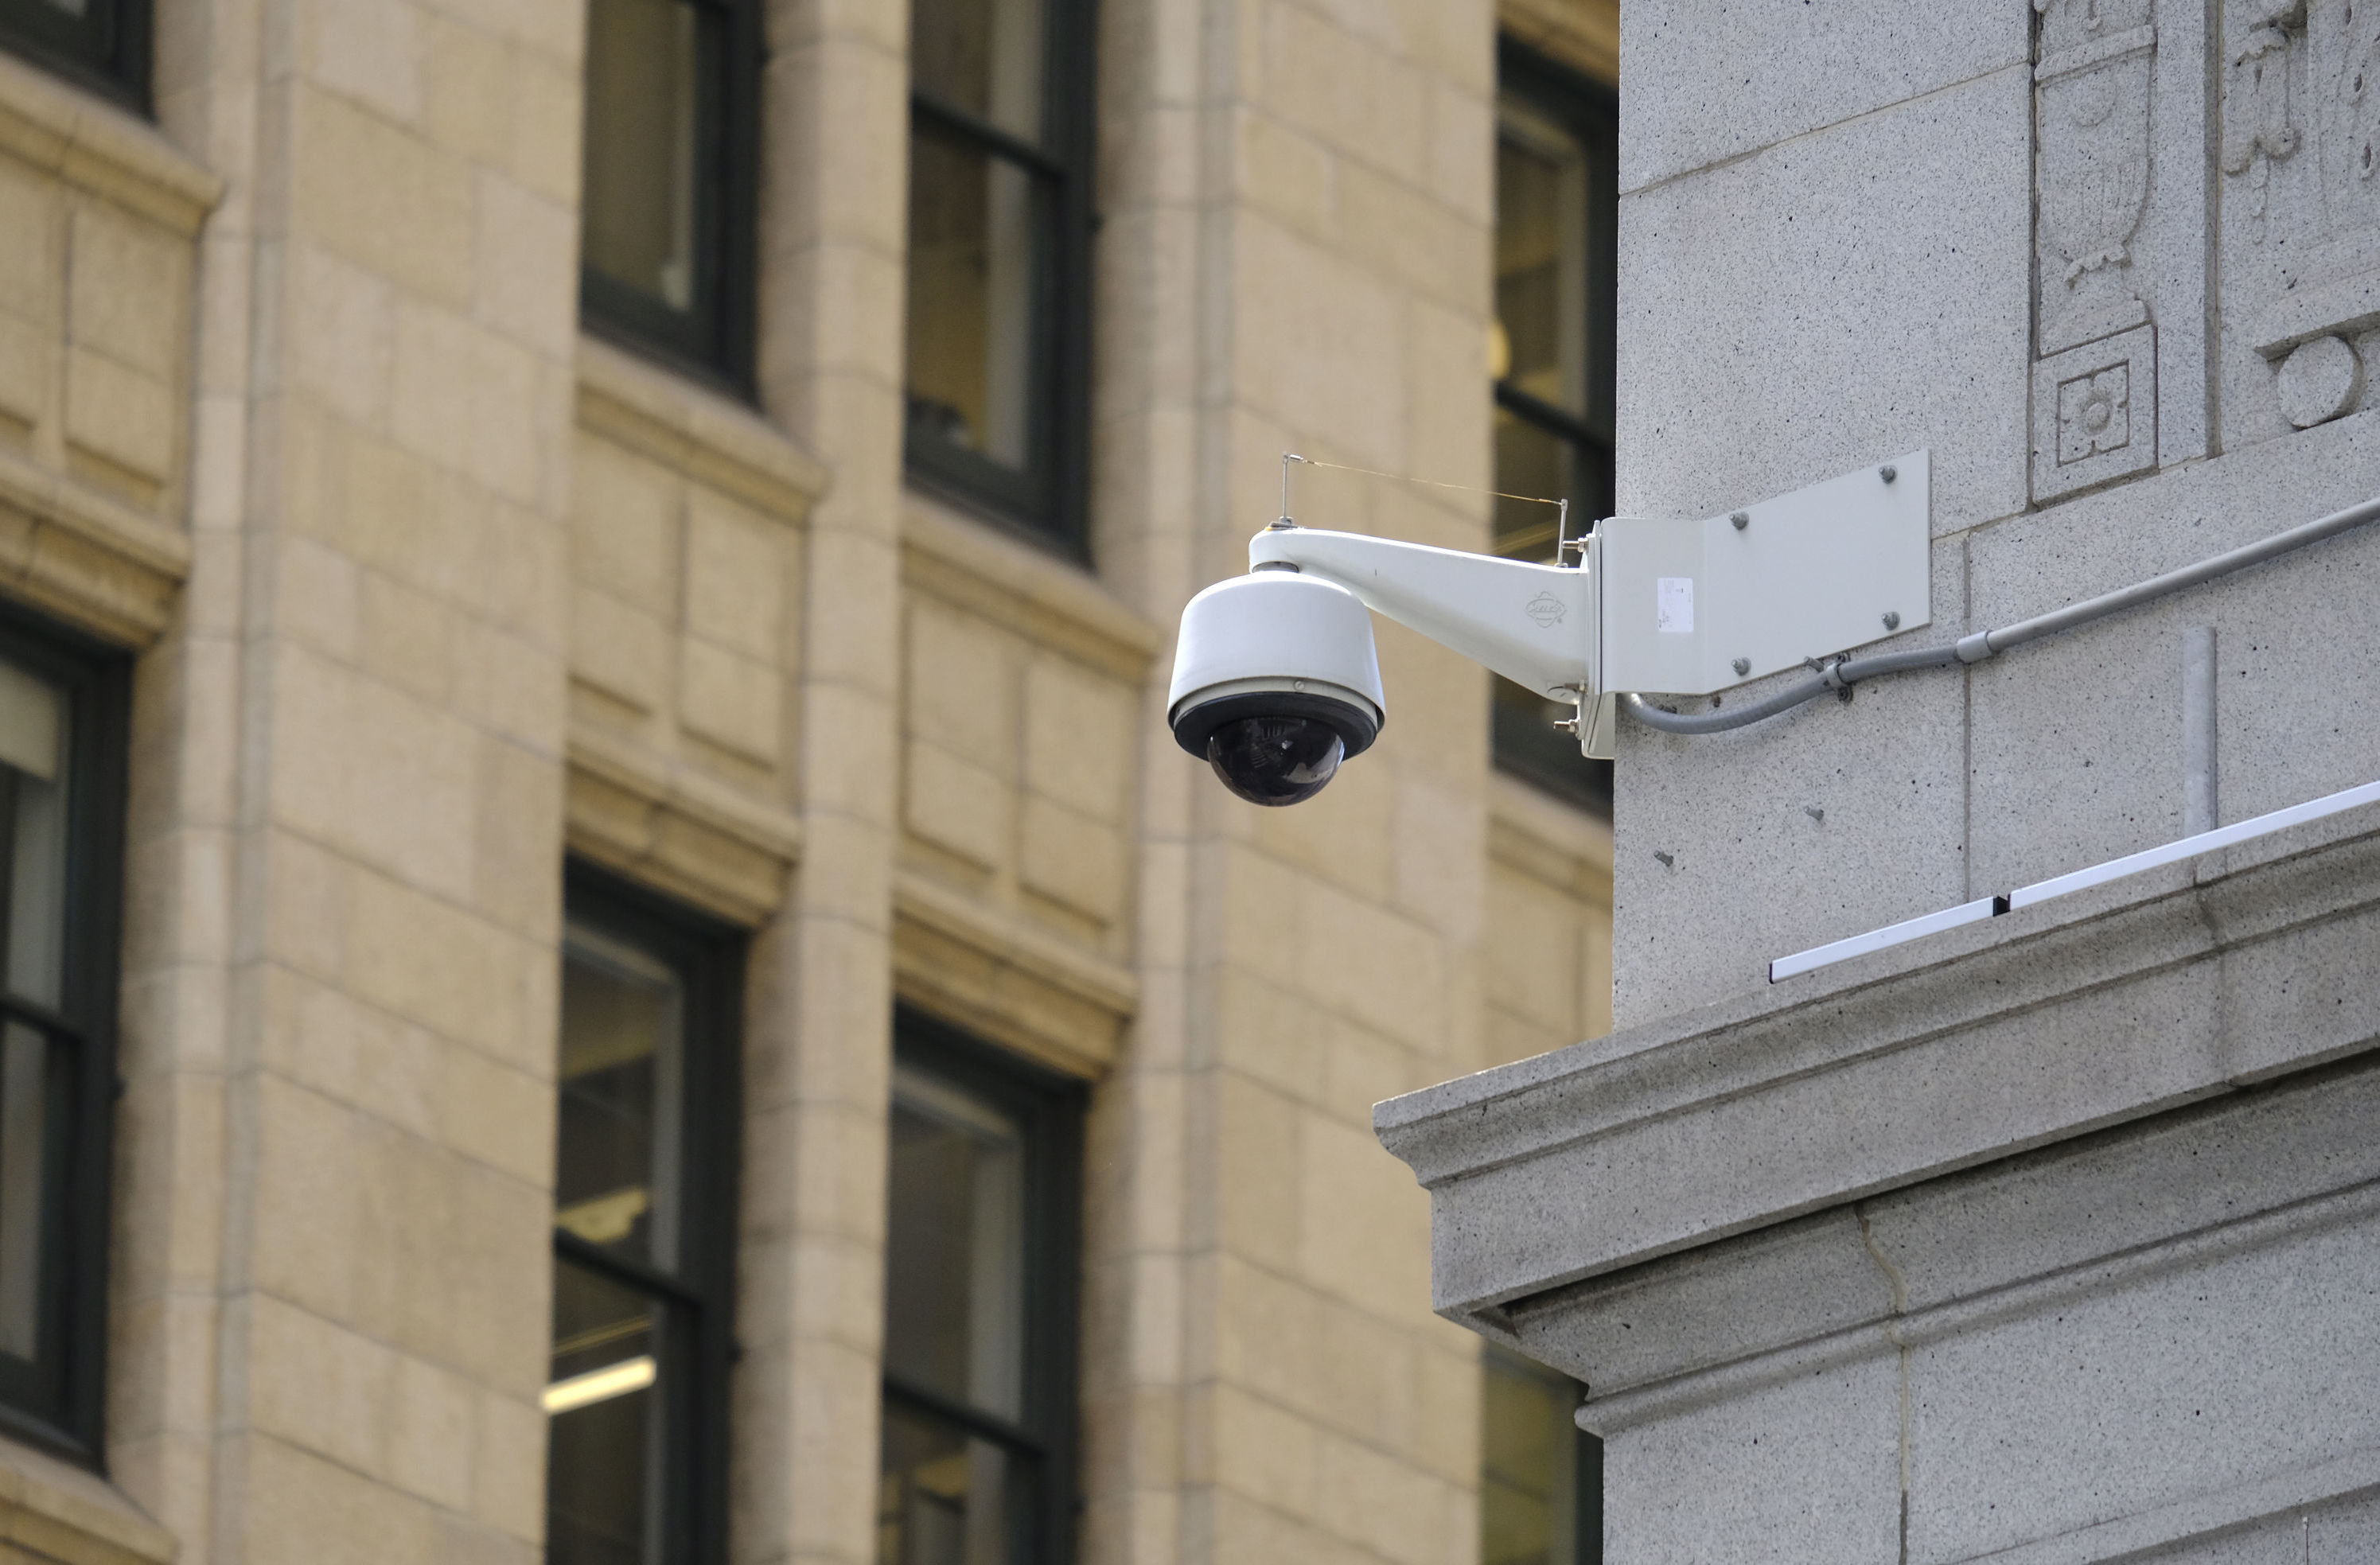 In this photo taken Tuesday, May 7, 2019, is a security camera in the Financial District of San Francisco. San Francisco is on track to become the first U.S. city to ban the use of facial recognition by police and other city agencies as the technology creeps increasingly into daily life.